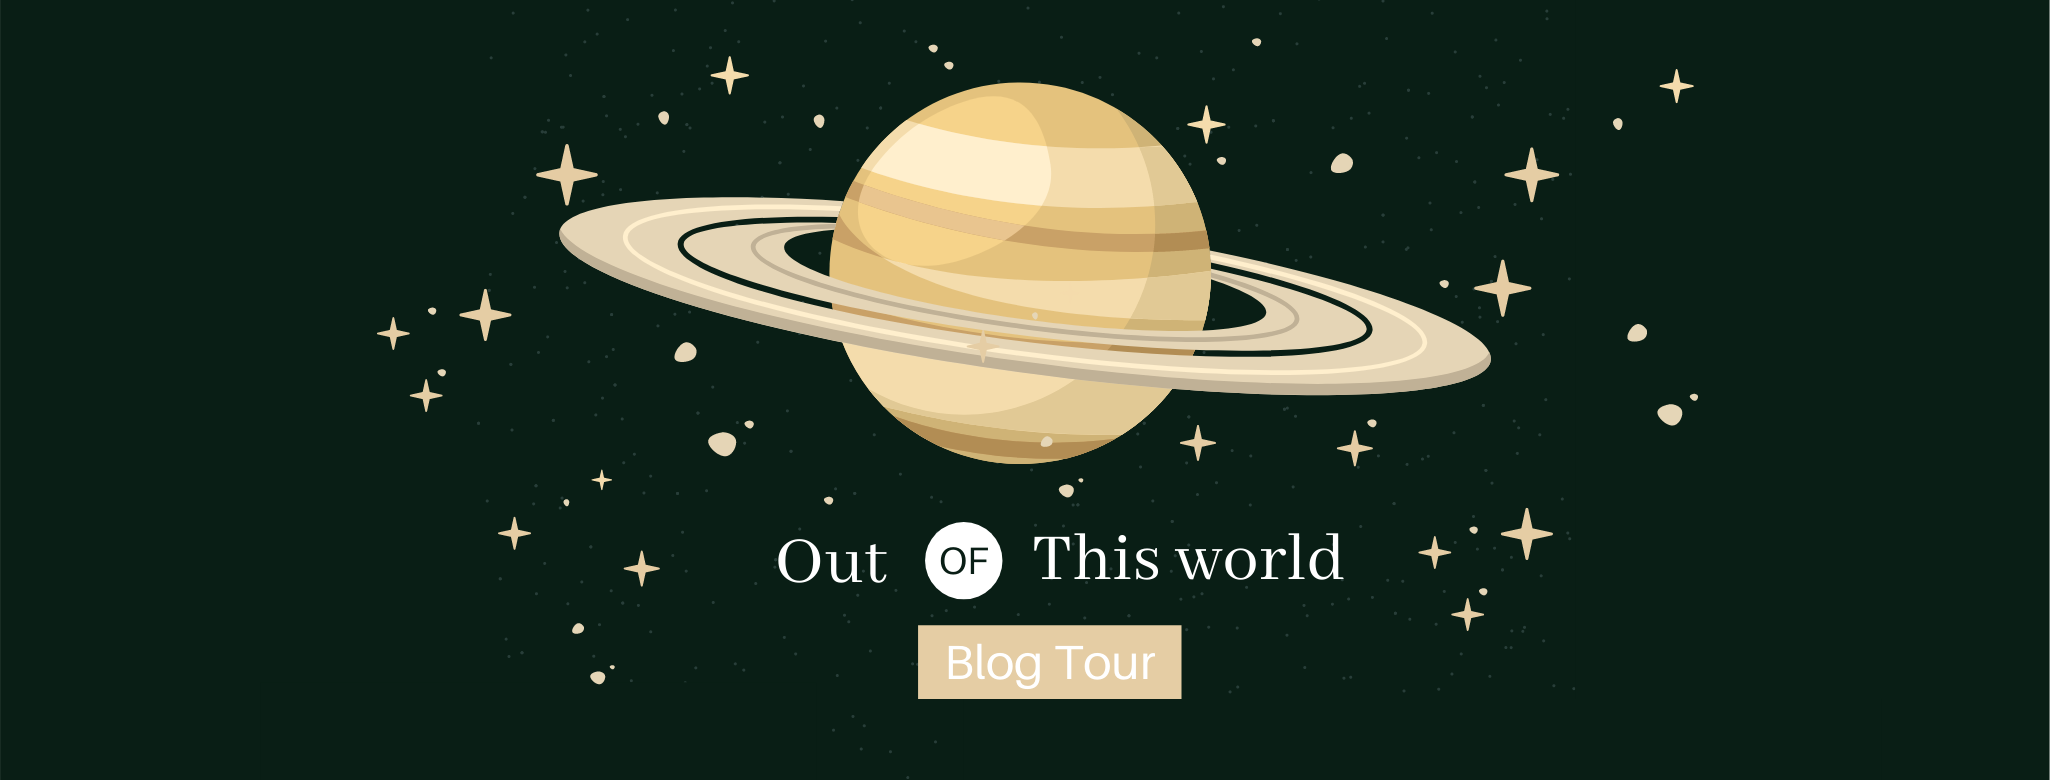 Out Of This World Blog Tour